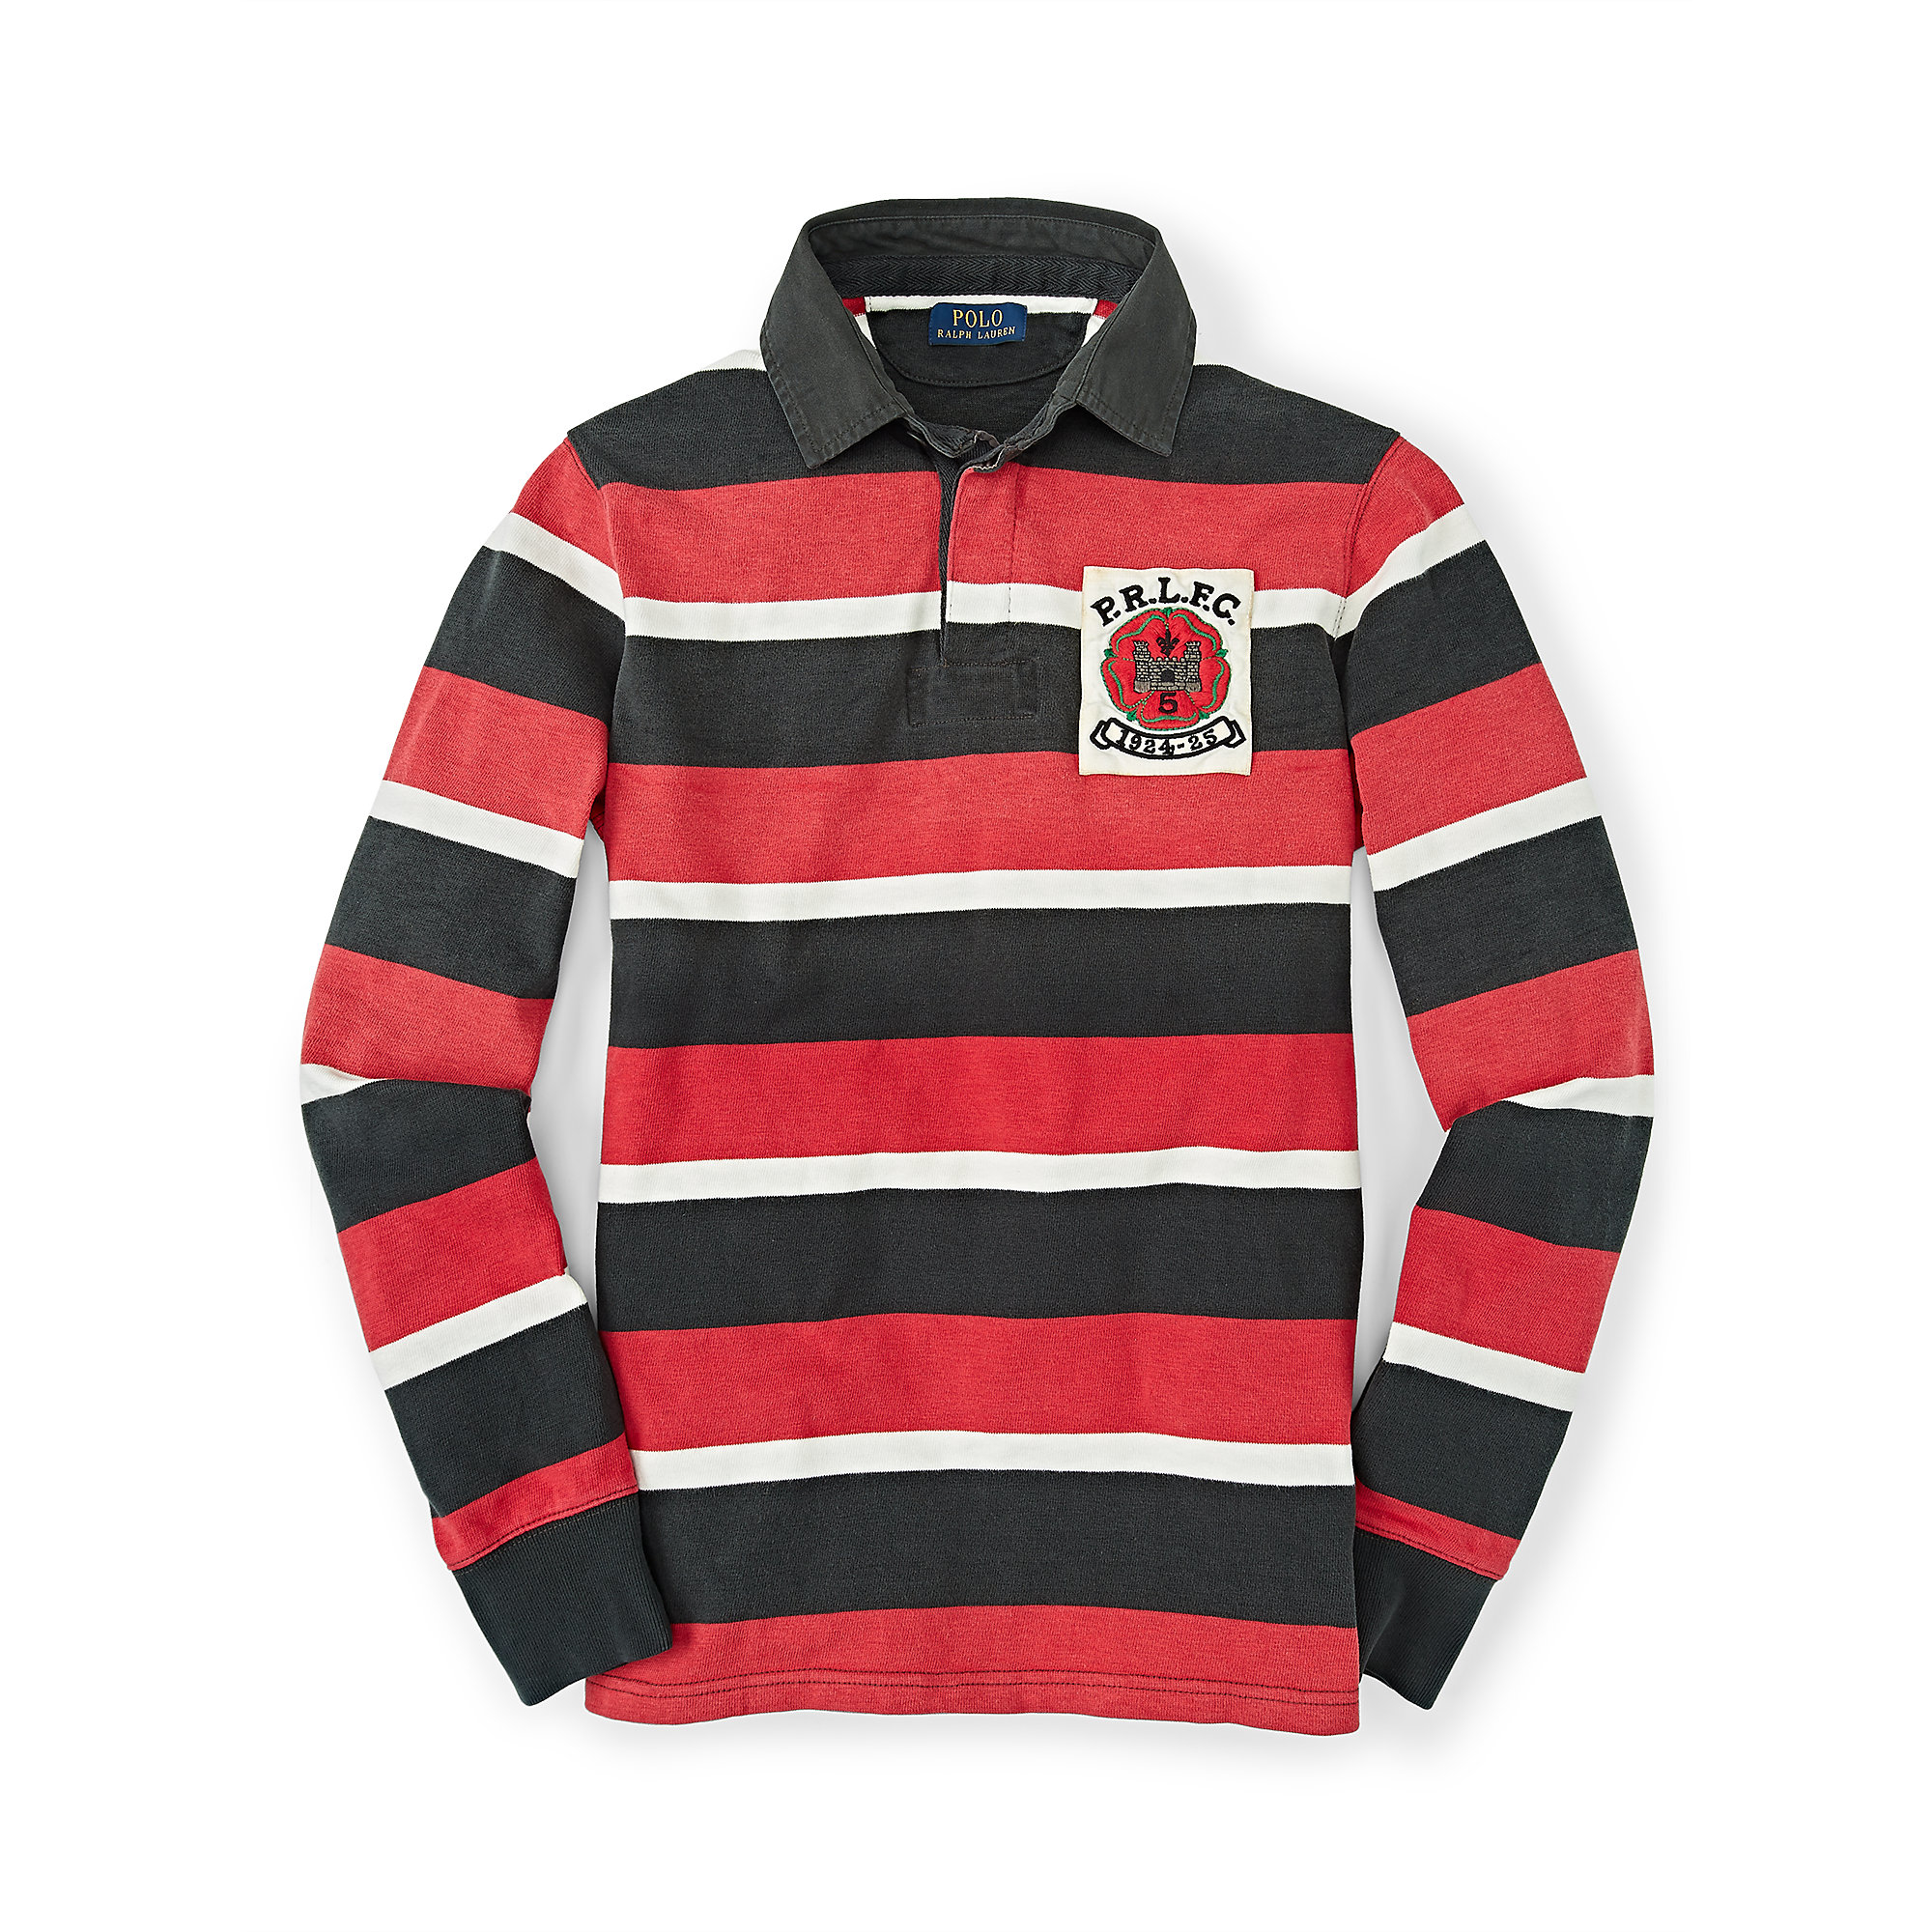 26e8f4dabb5 Polo Ralph Lauren Striped Cotton Rugby Shirt in Red for Men - Lyst